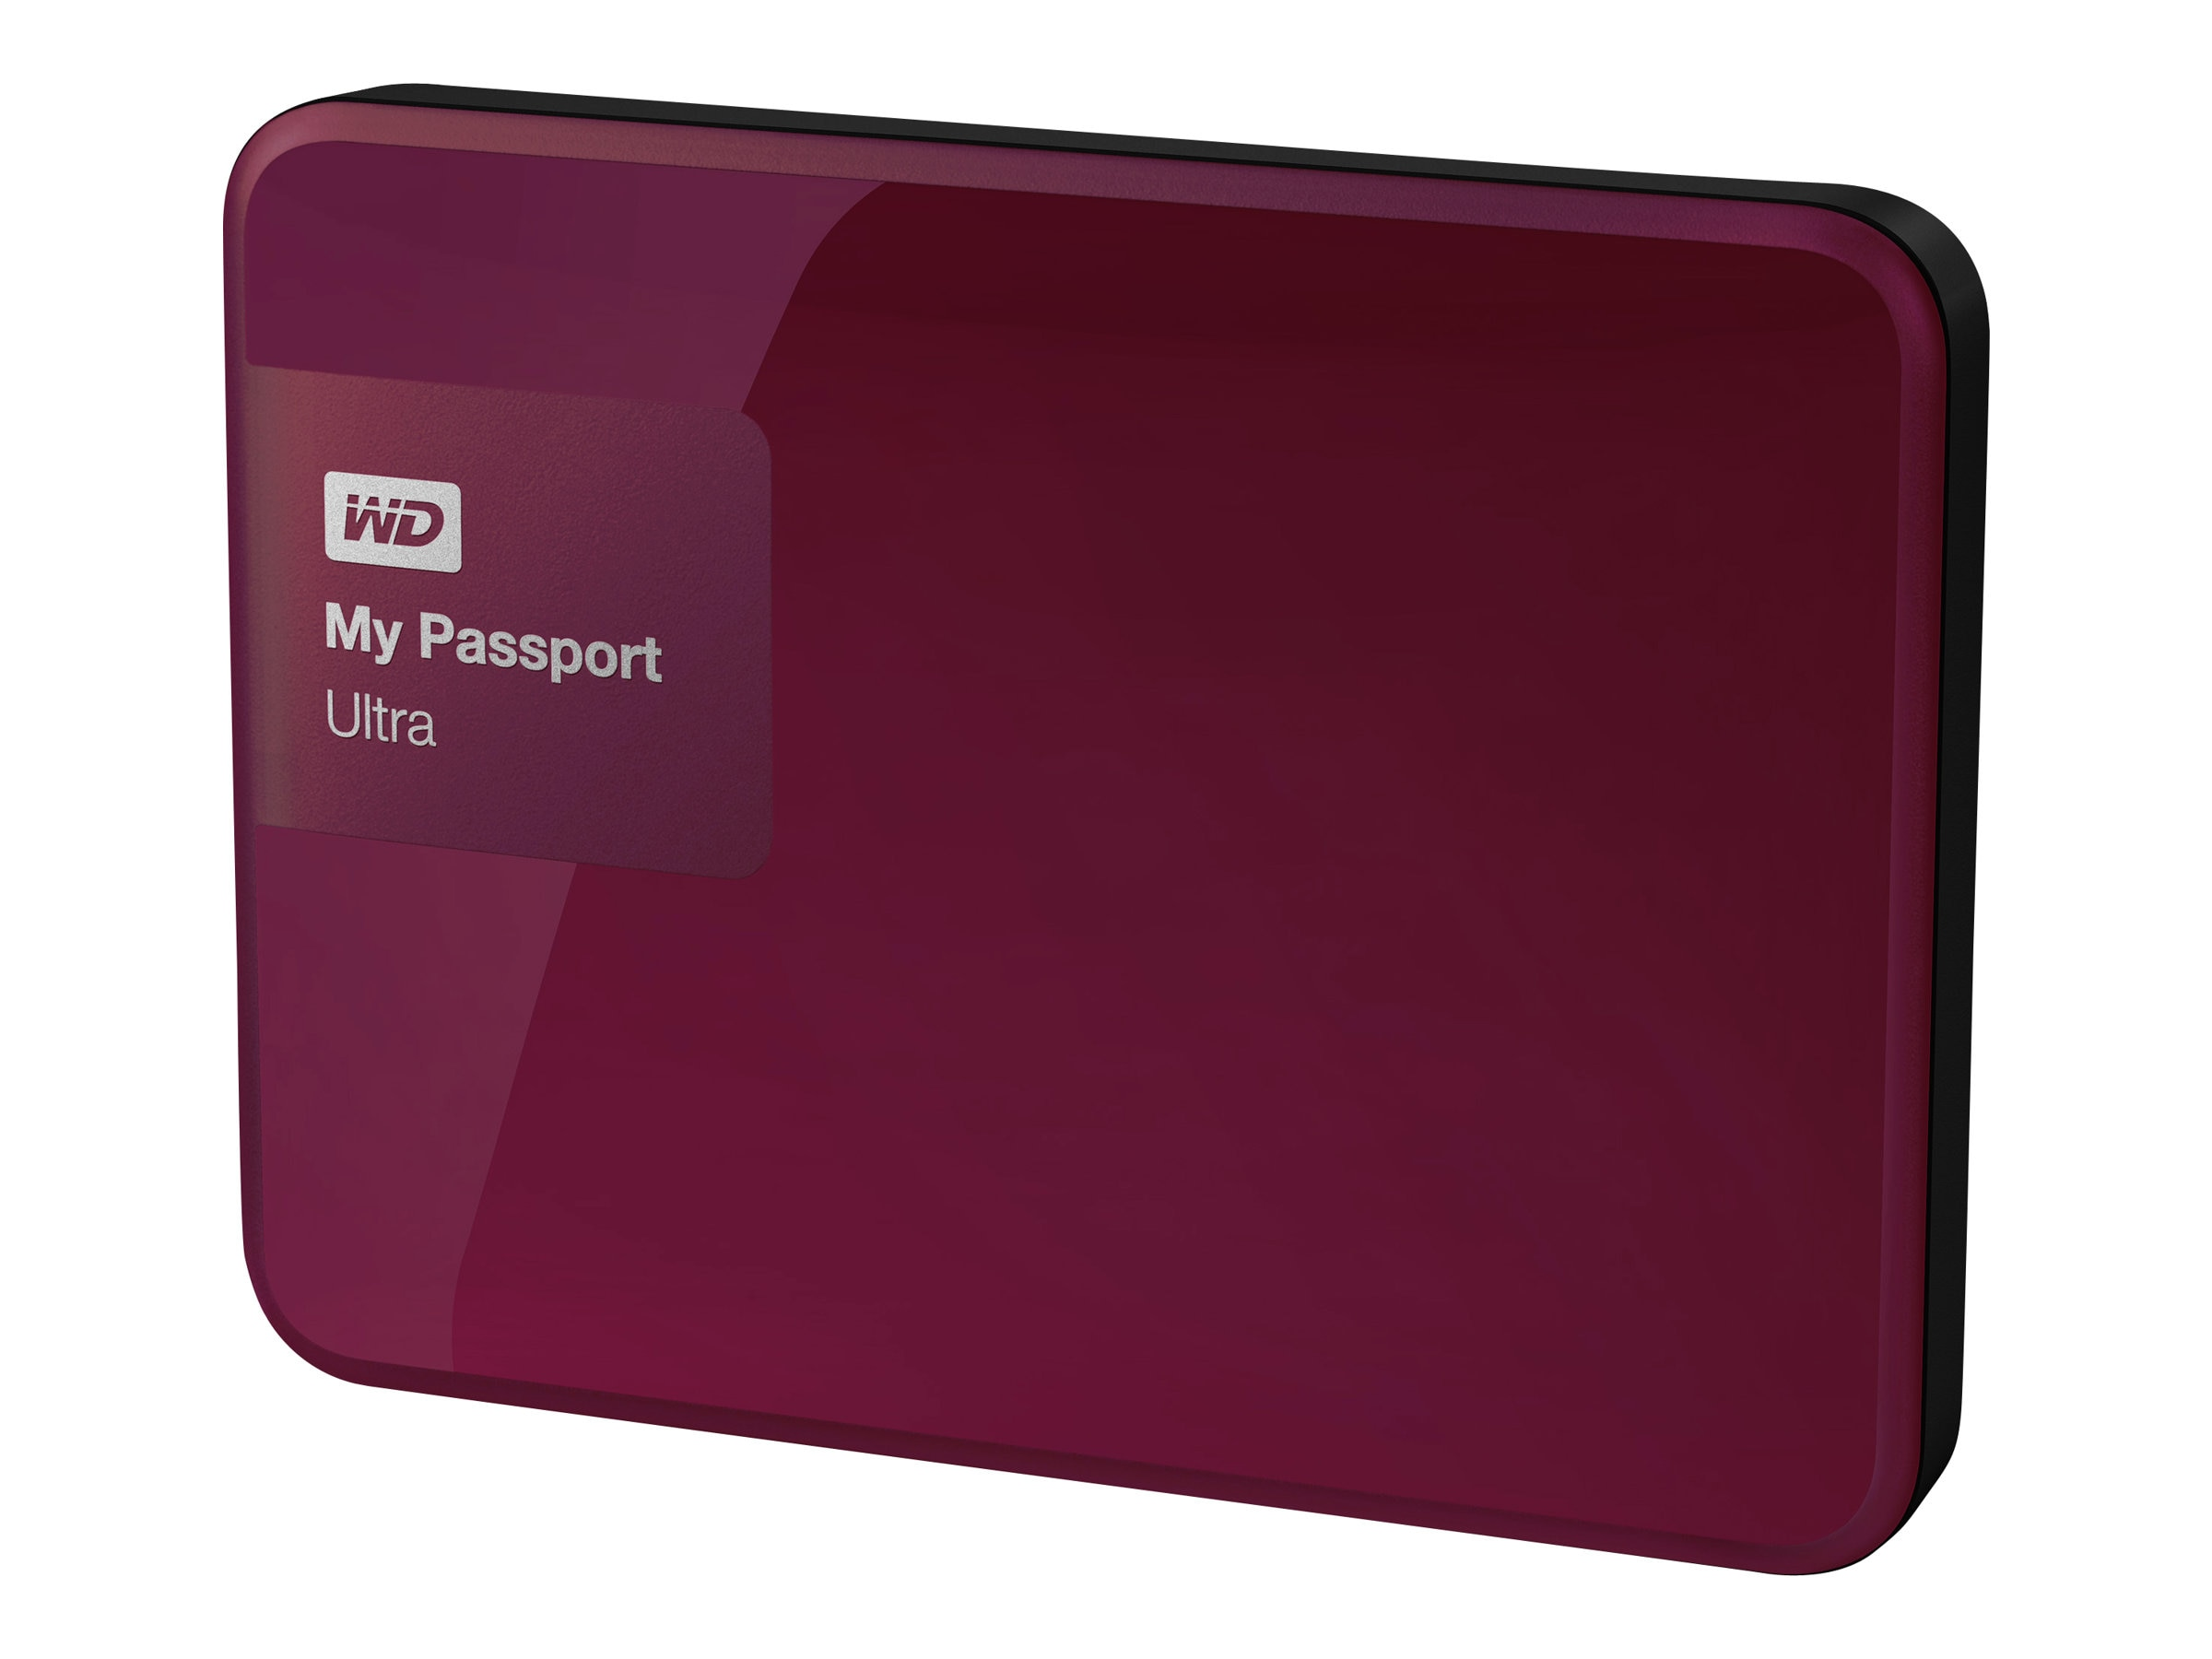 WD 1TB My Passport Ultra Portable Hard Drive - Berry